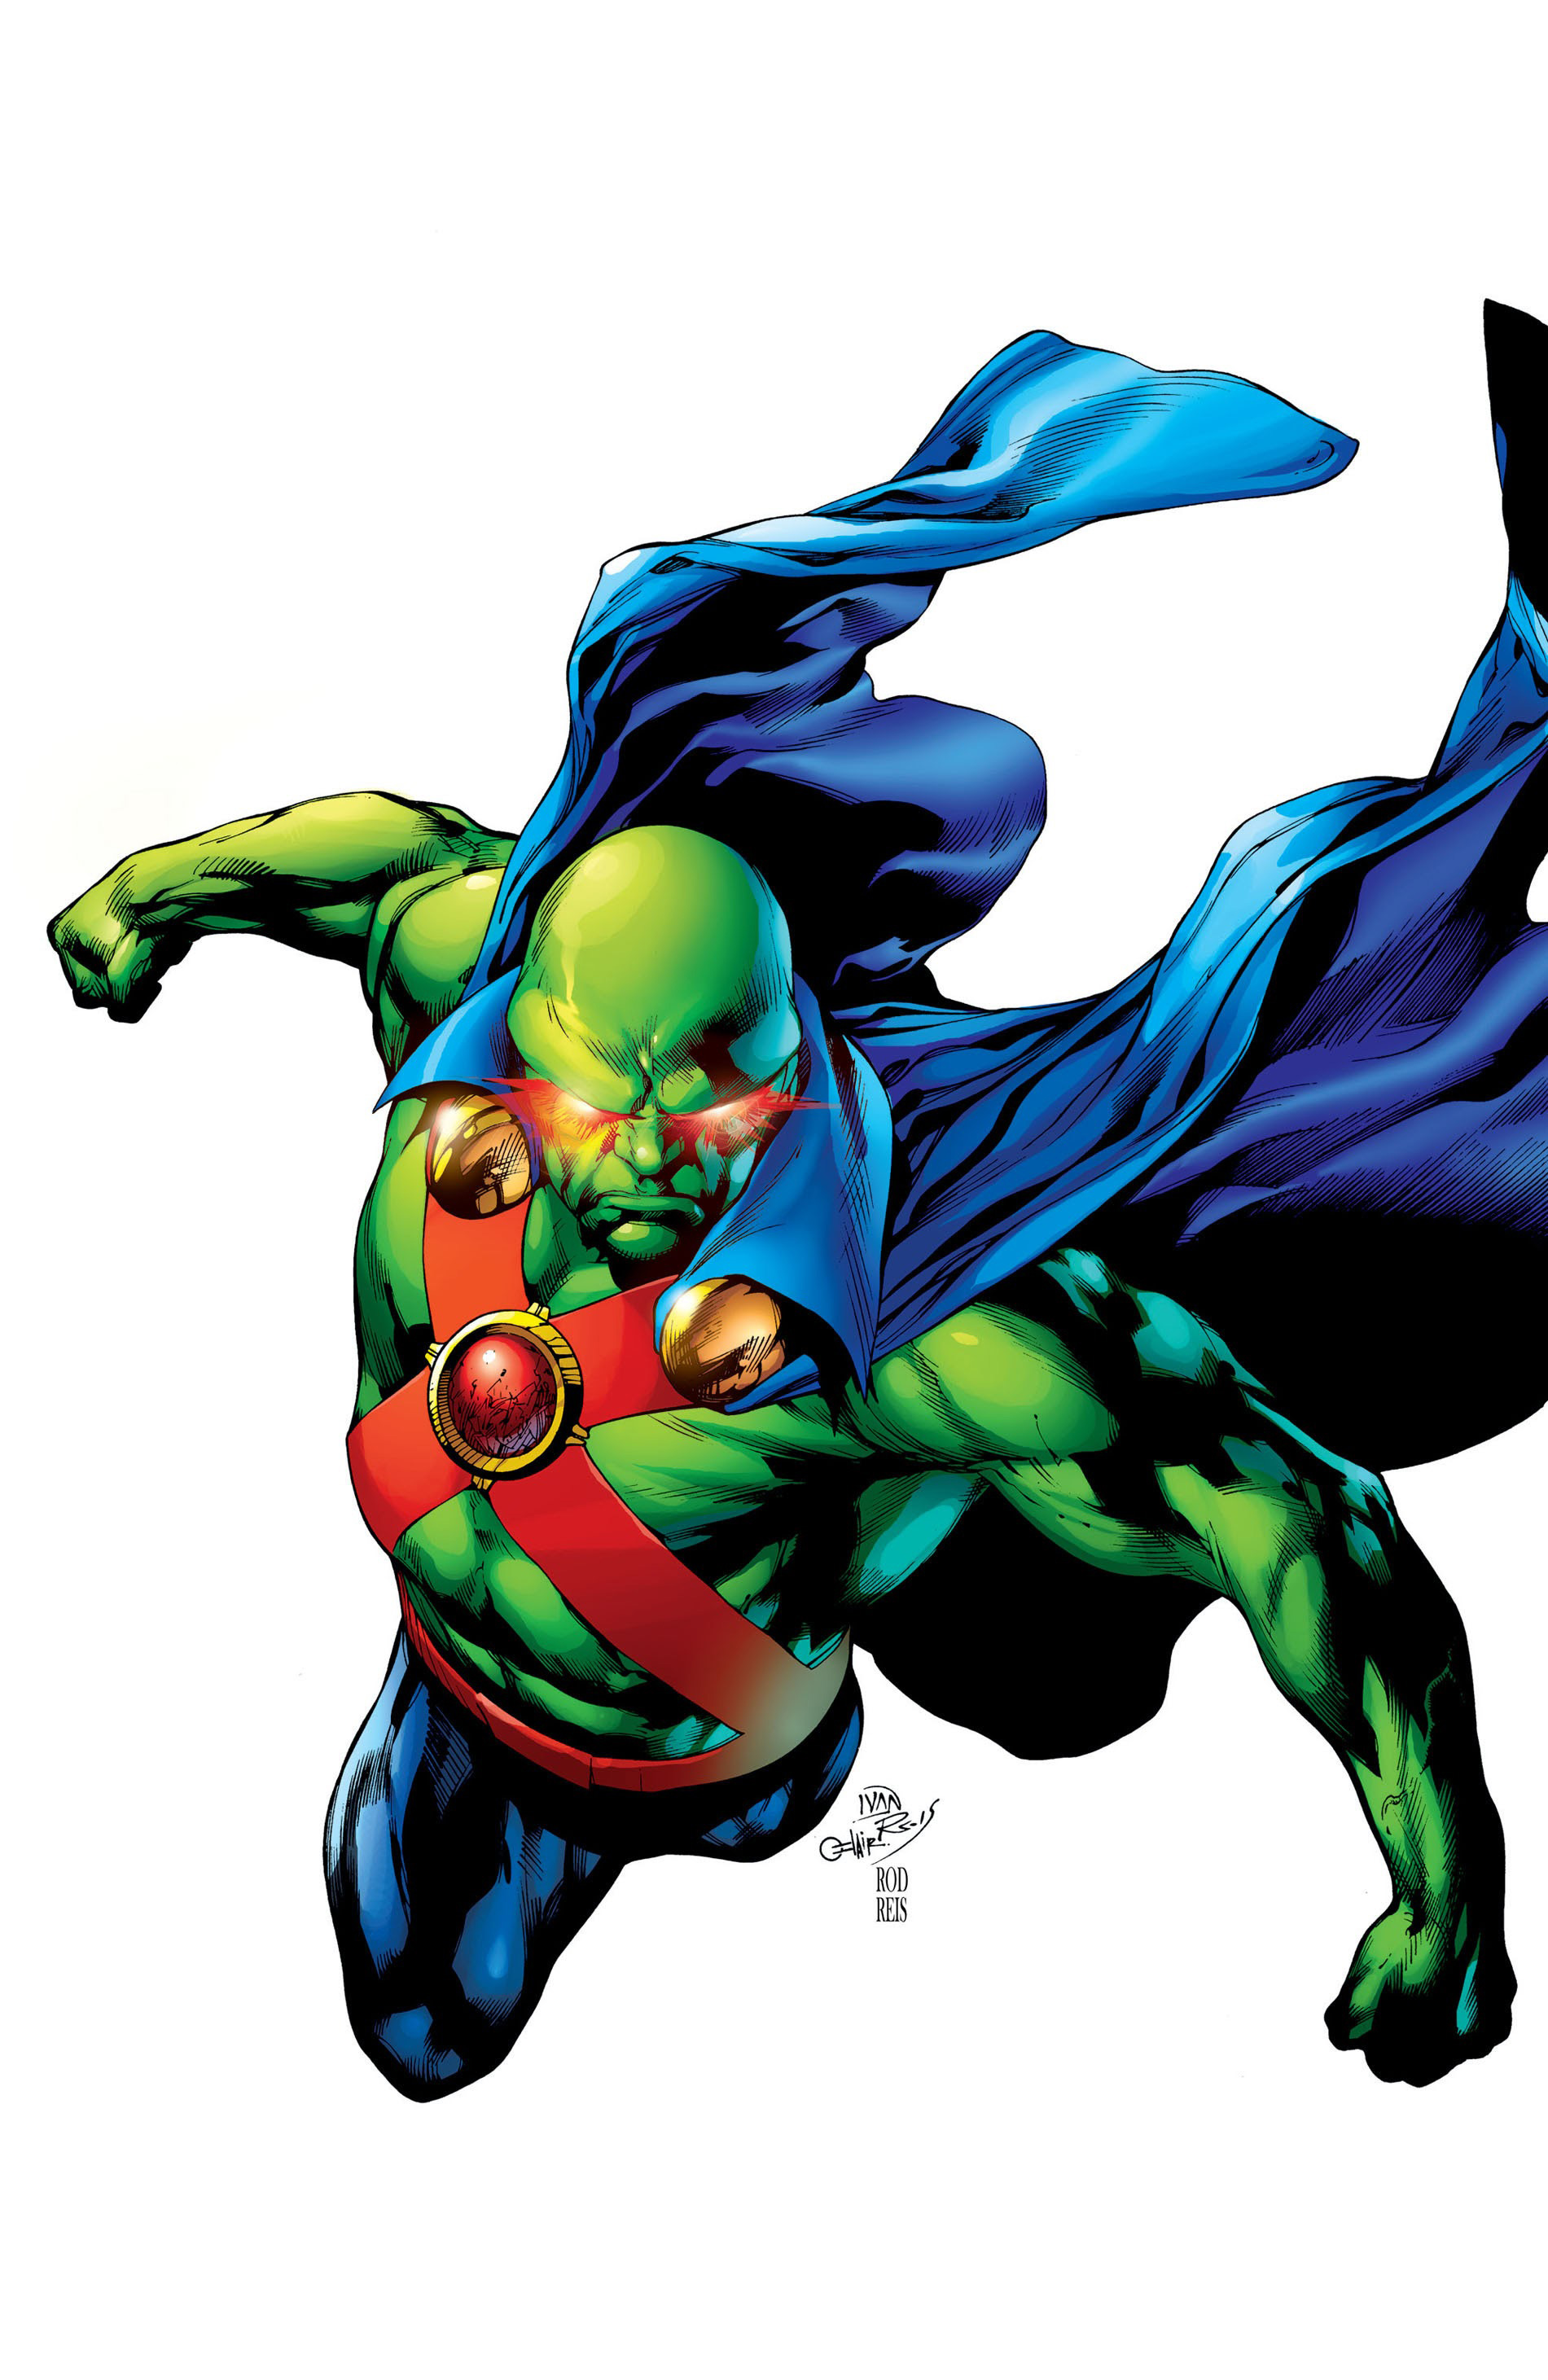 http://images2.wikia.nocookie.net/__cb20101215005017/marvel_dc/images/b/ba/Martian_Manhunter_0003.jpg